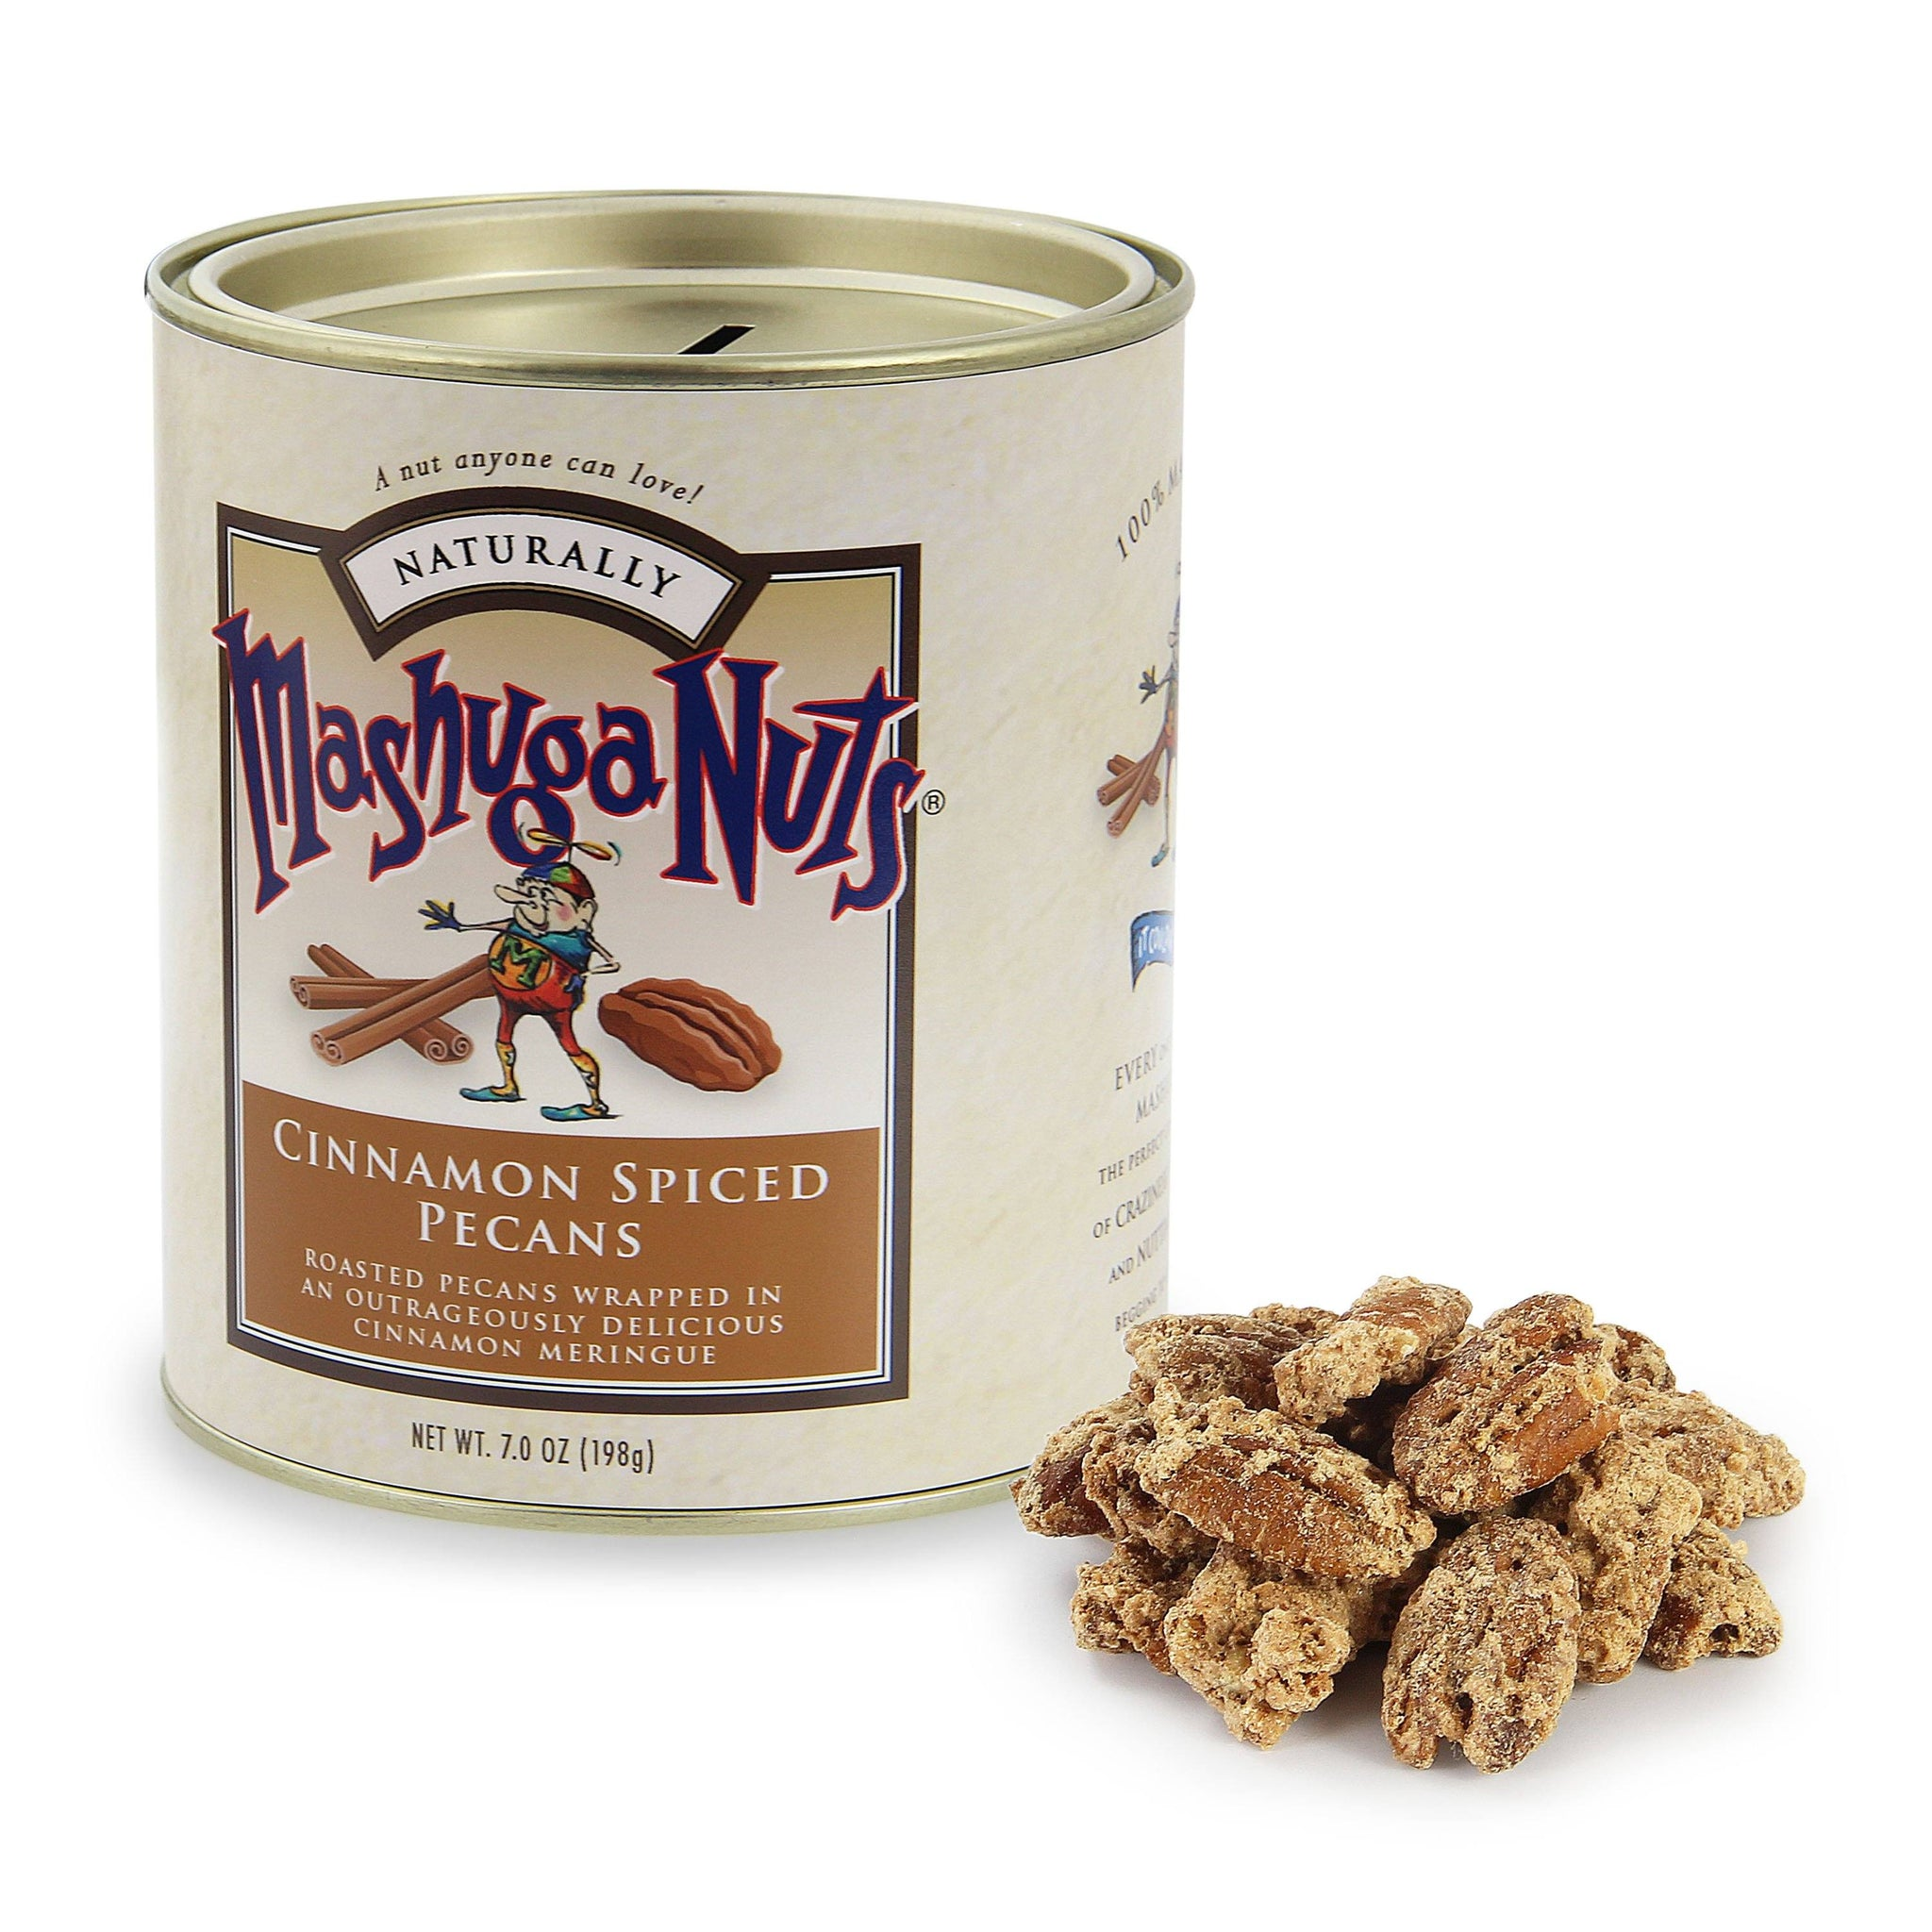 Torn Ranch Mashuga Nuts Duo Carrier (Tin) in Gourmet Nuts - pile of nuts next to container